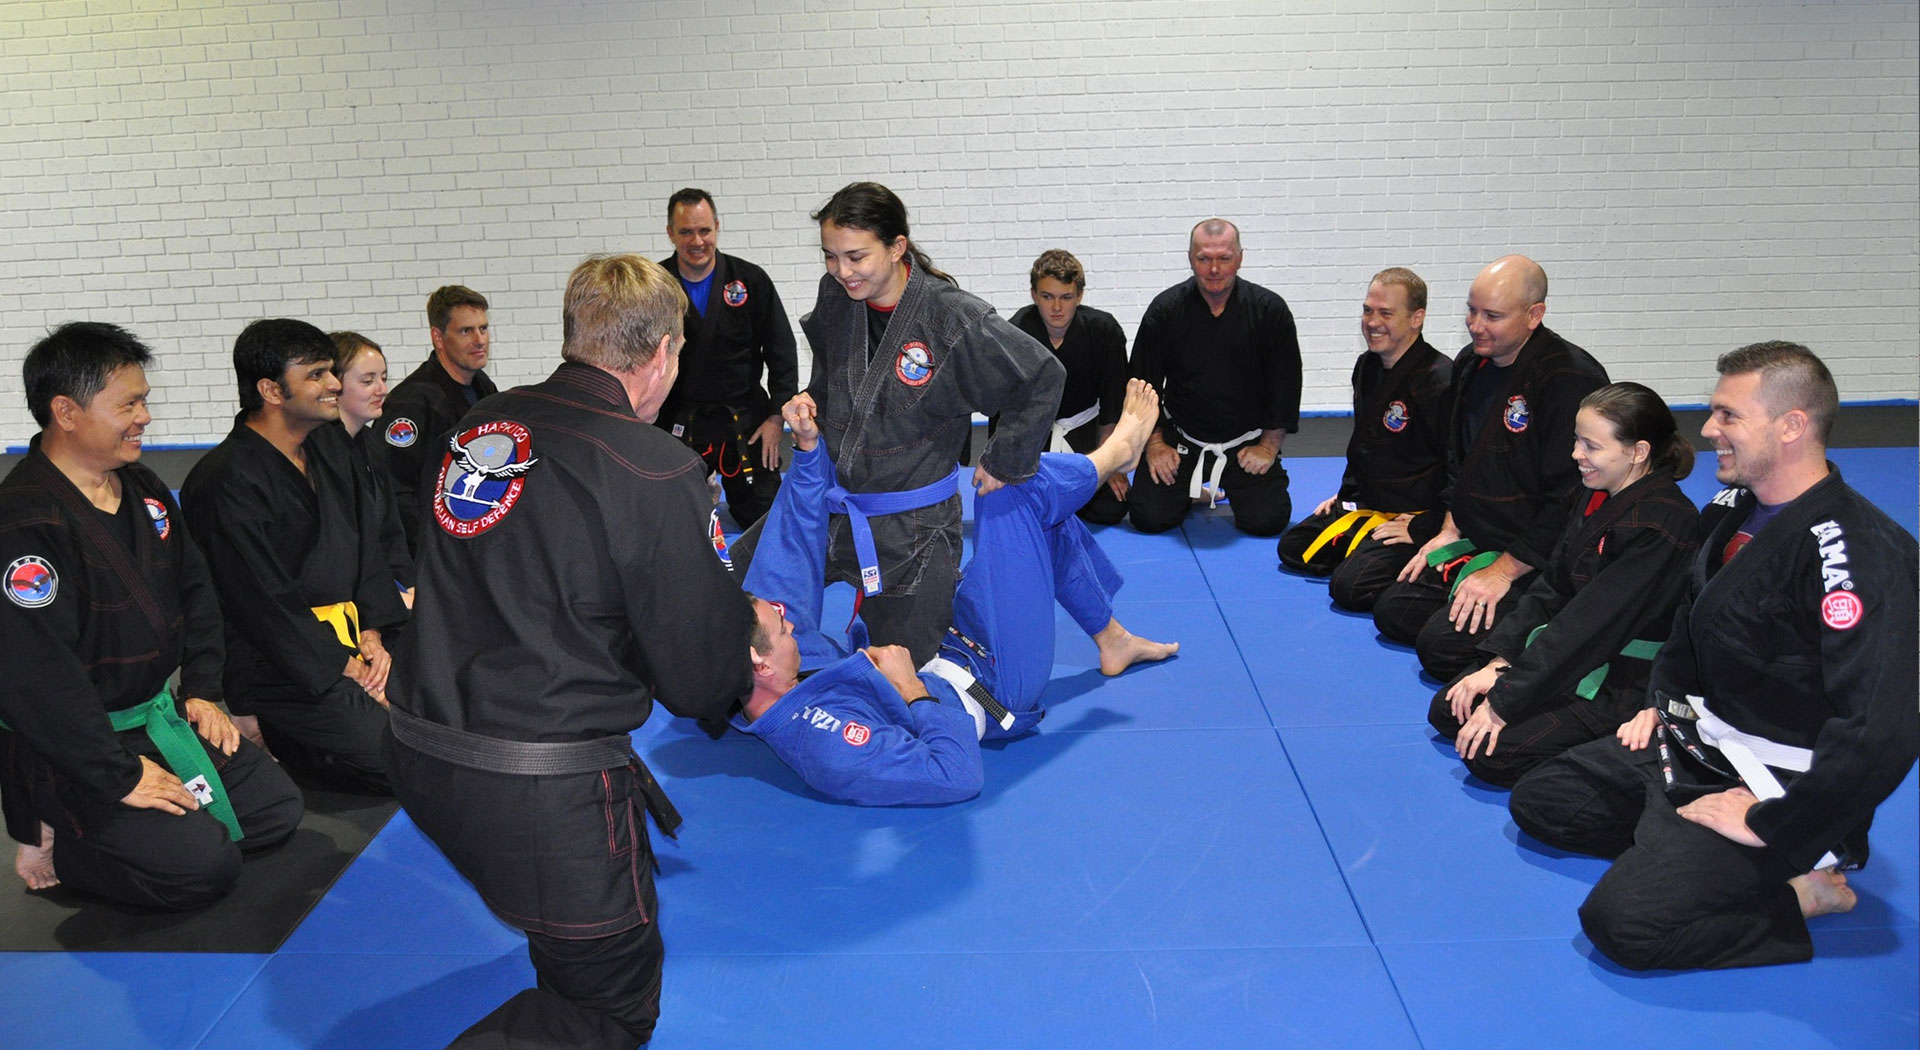 Australian Self Defence Adults Brazilian Jiu Jitsu Martial Arts Training Canberra